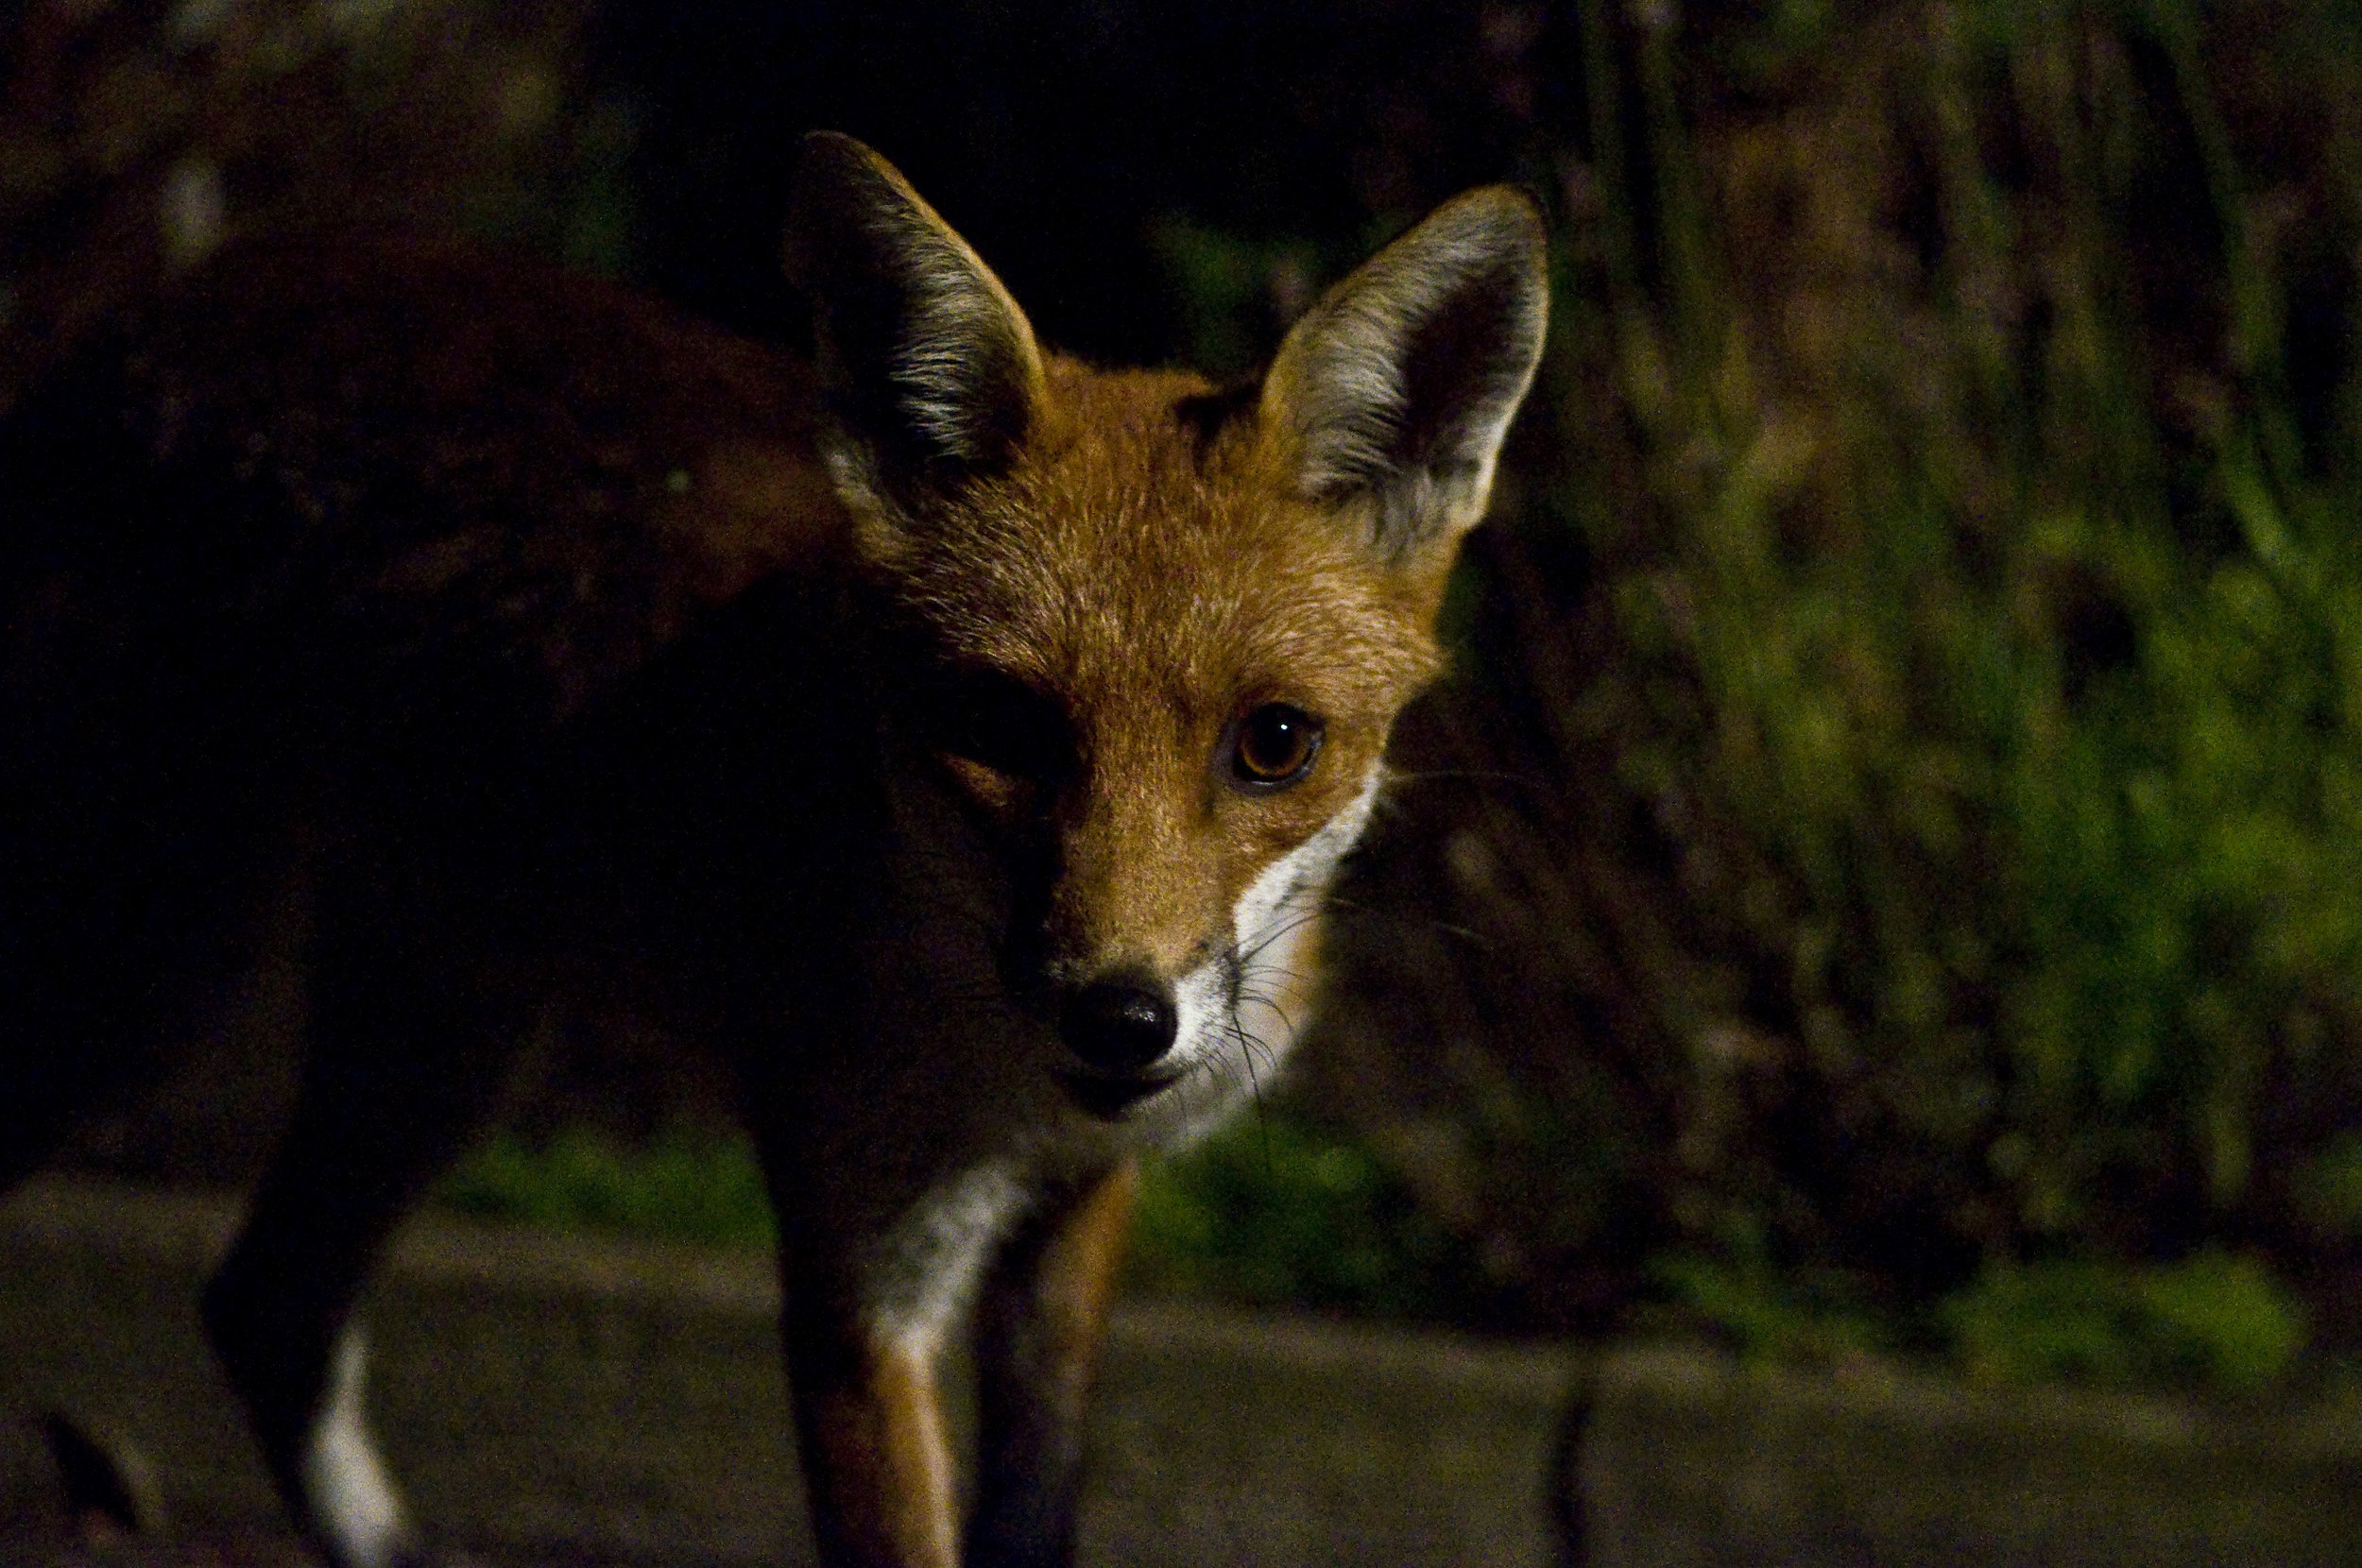 Fox at night, knowing things. (photo credit: edinburghwildlife.wordpress.com)